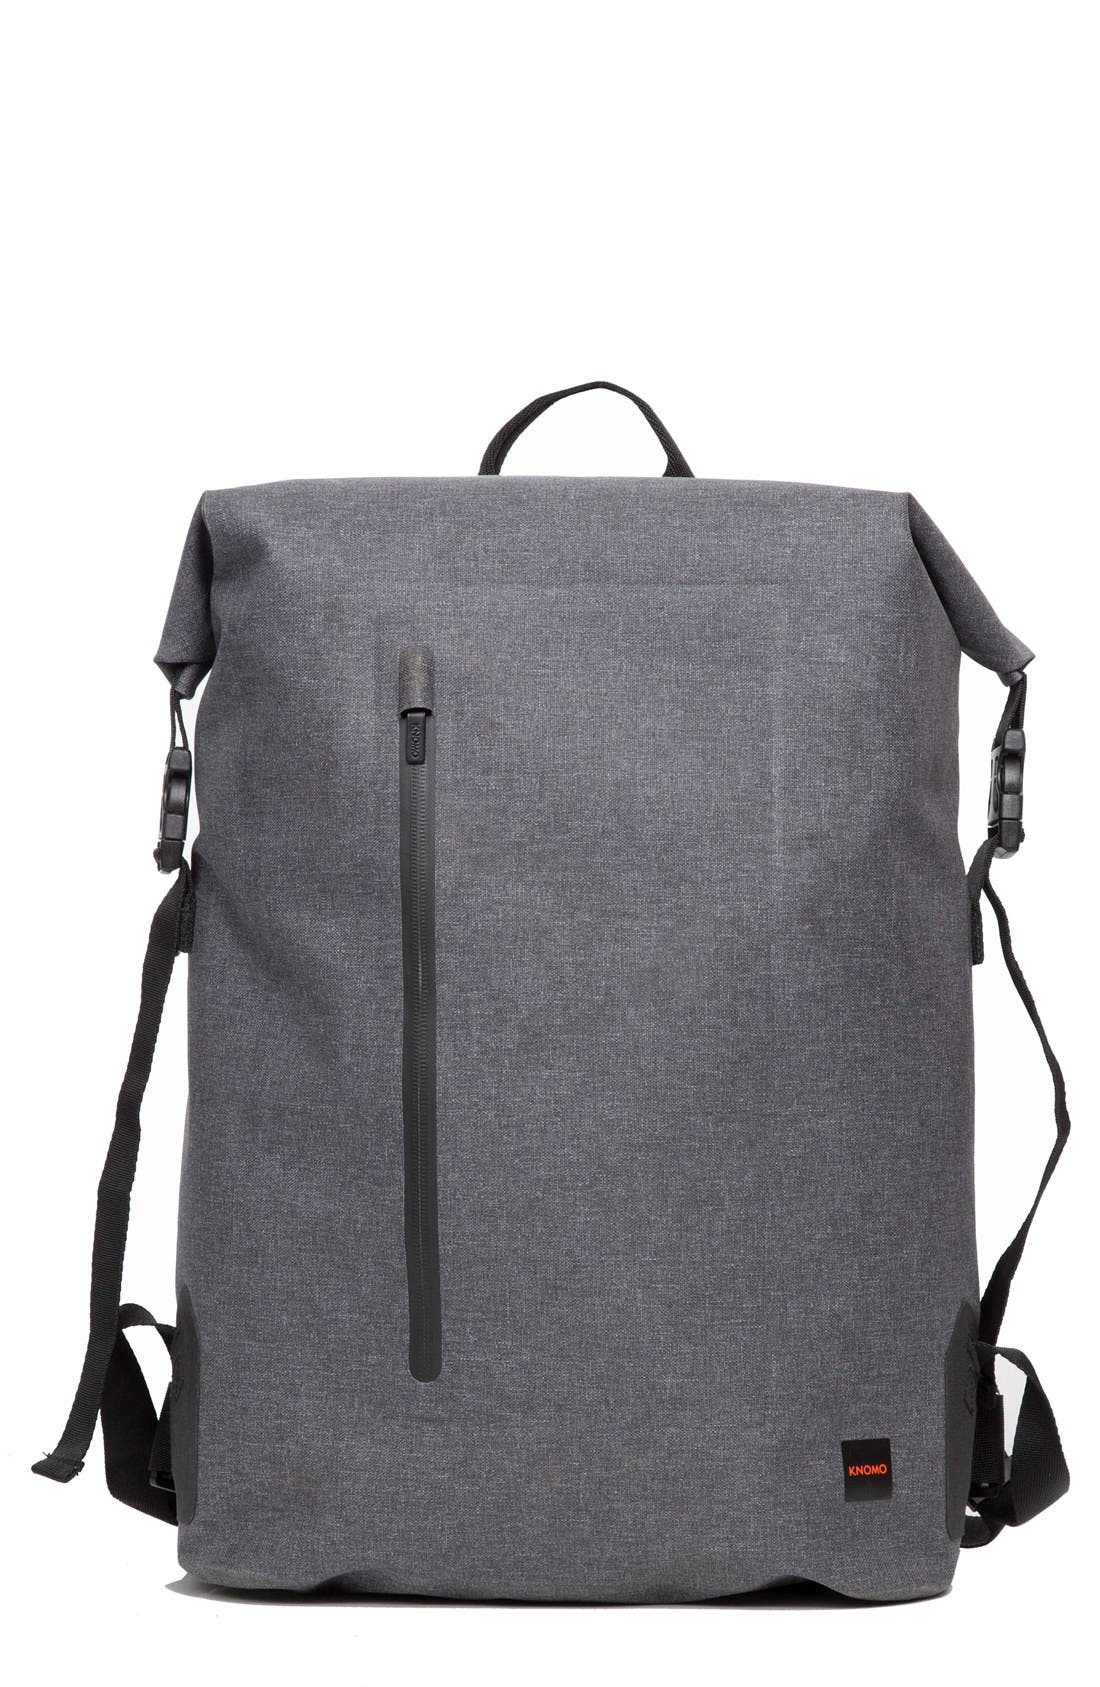 KNOMO London Thames Cromwell Roll Top Backpack